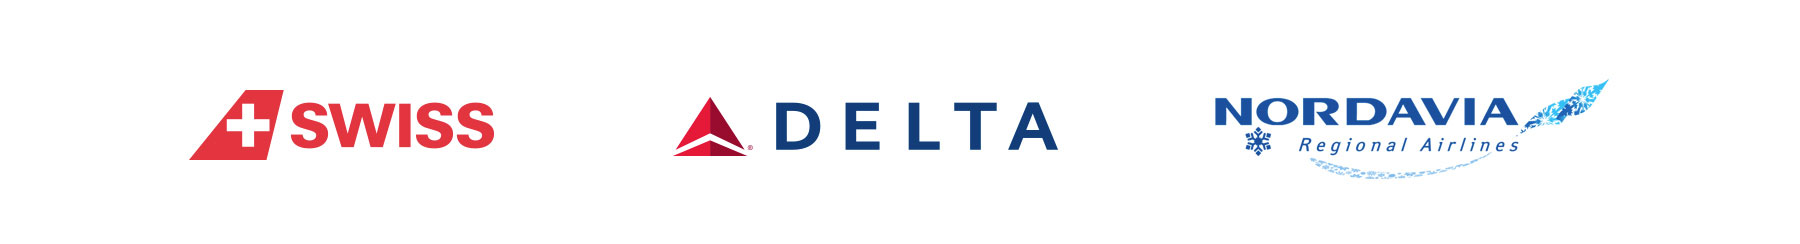 Commercial Partners Swiss, Delta Airlines and Nordavia Regional Airlines